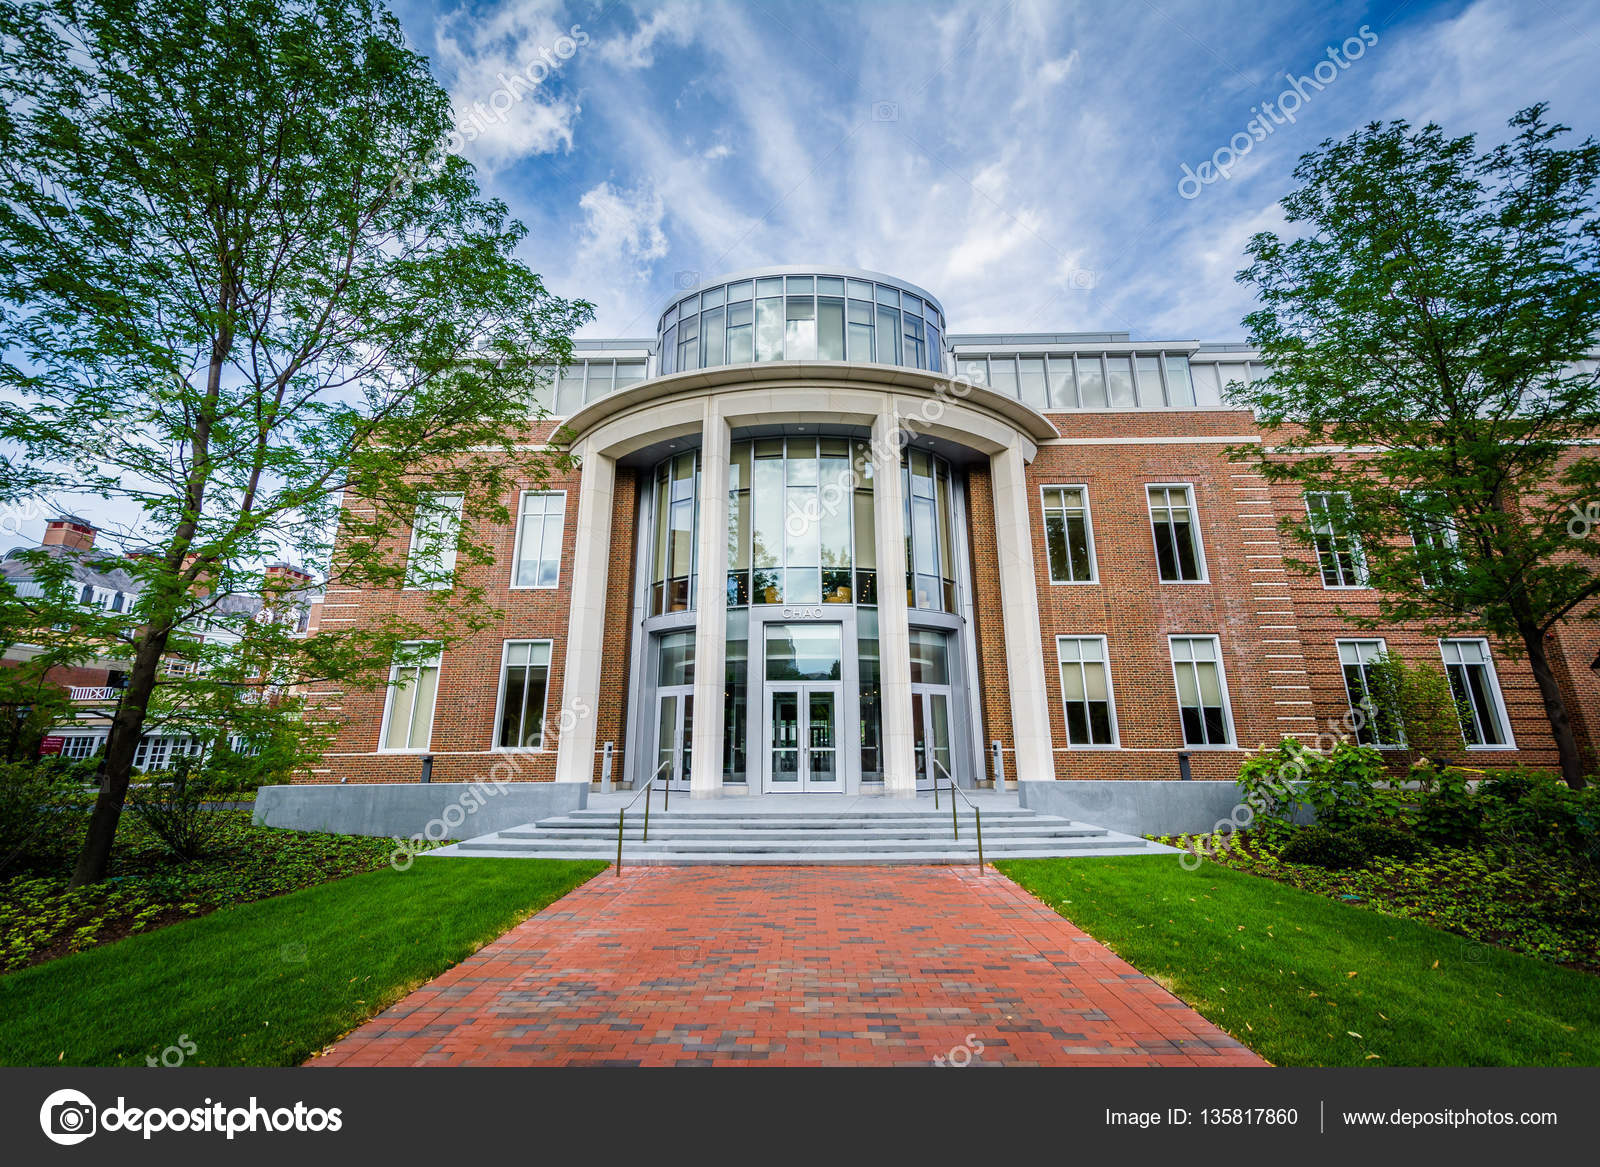 harvard business school the atekpc project The us cluster mapping project is led by professor michael e porter at the institute for strategy and competitiveness, harvard business school this project is funded by the us department of commerce, economic development administration.